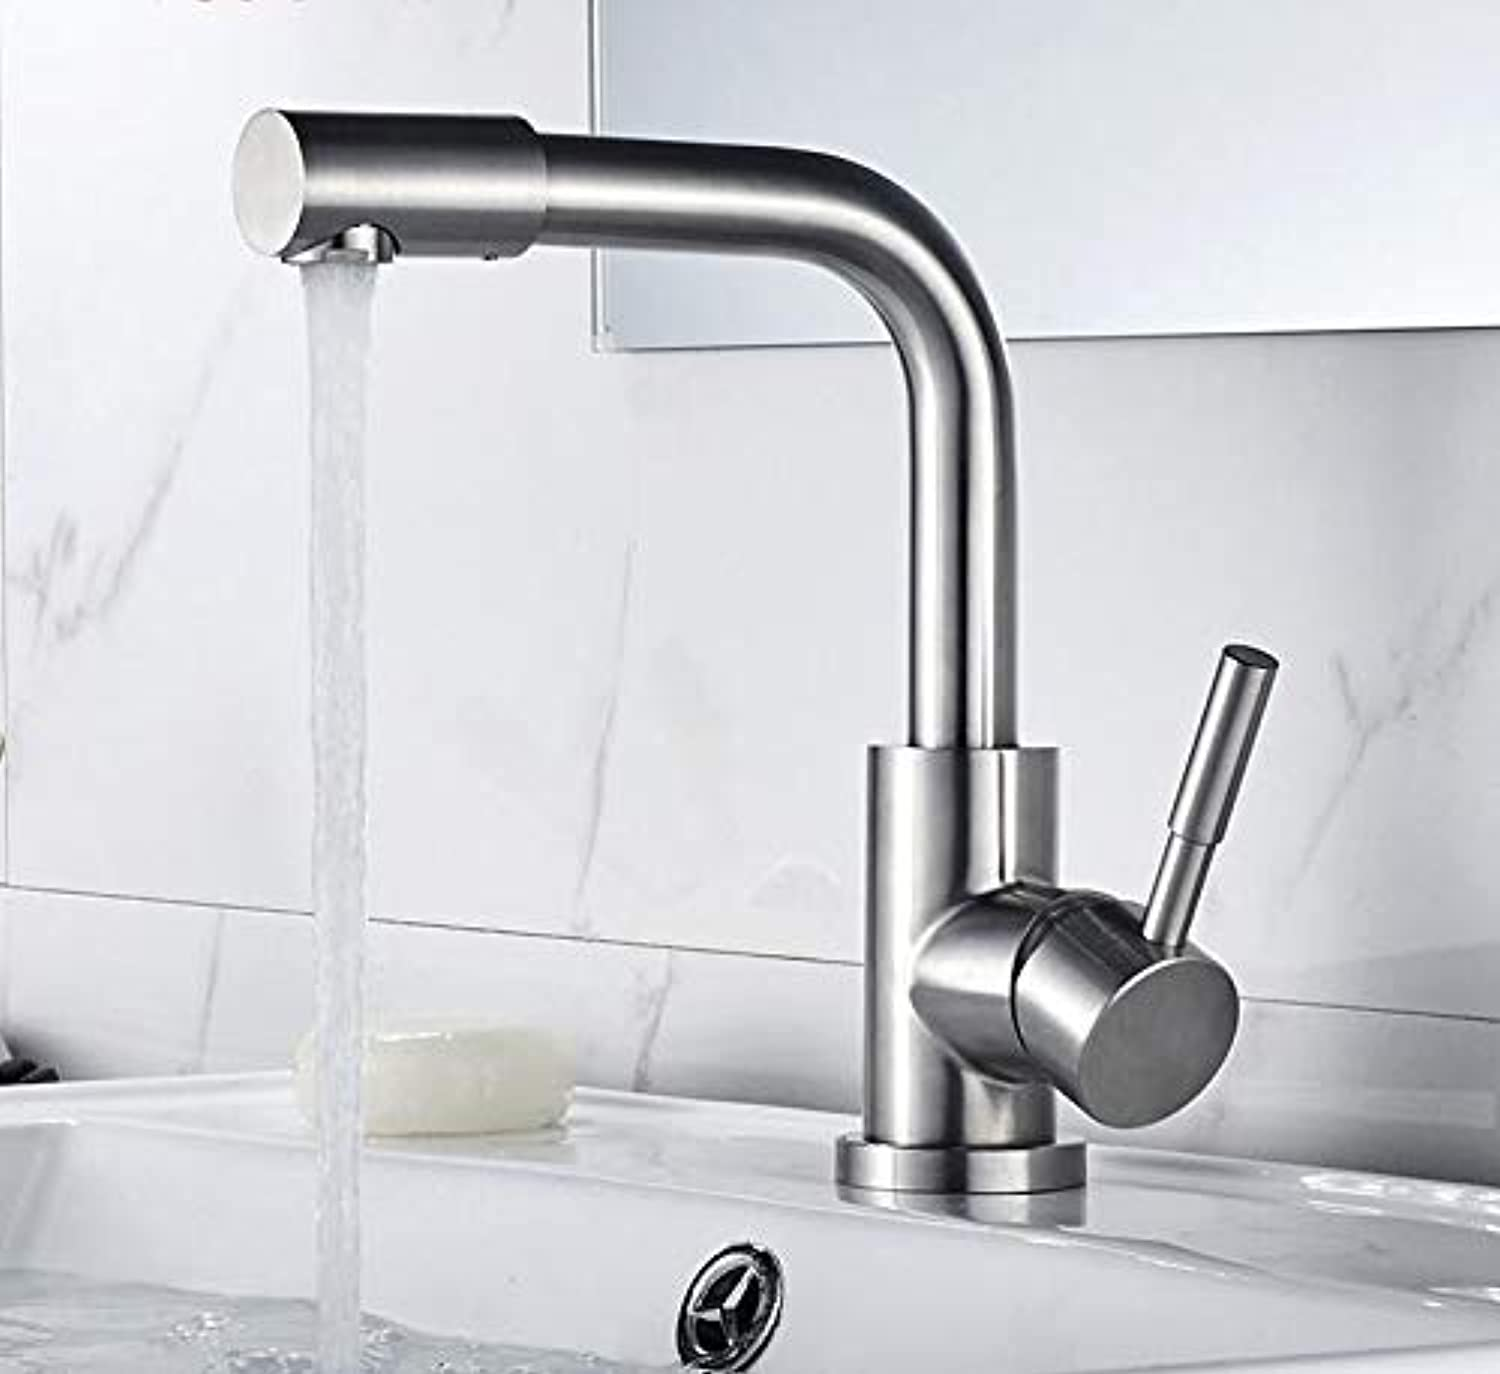 Makej Basin Faucet Stainless Steel 304 Right Angle Basin Faucets Mixers Sink Tap Wall Faucet Modern Hot and Cold Water